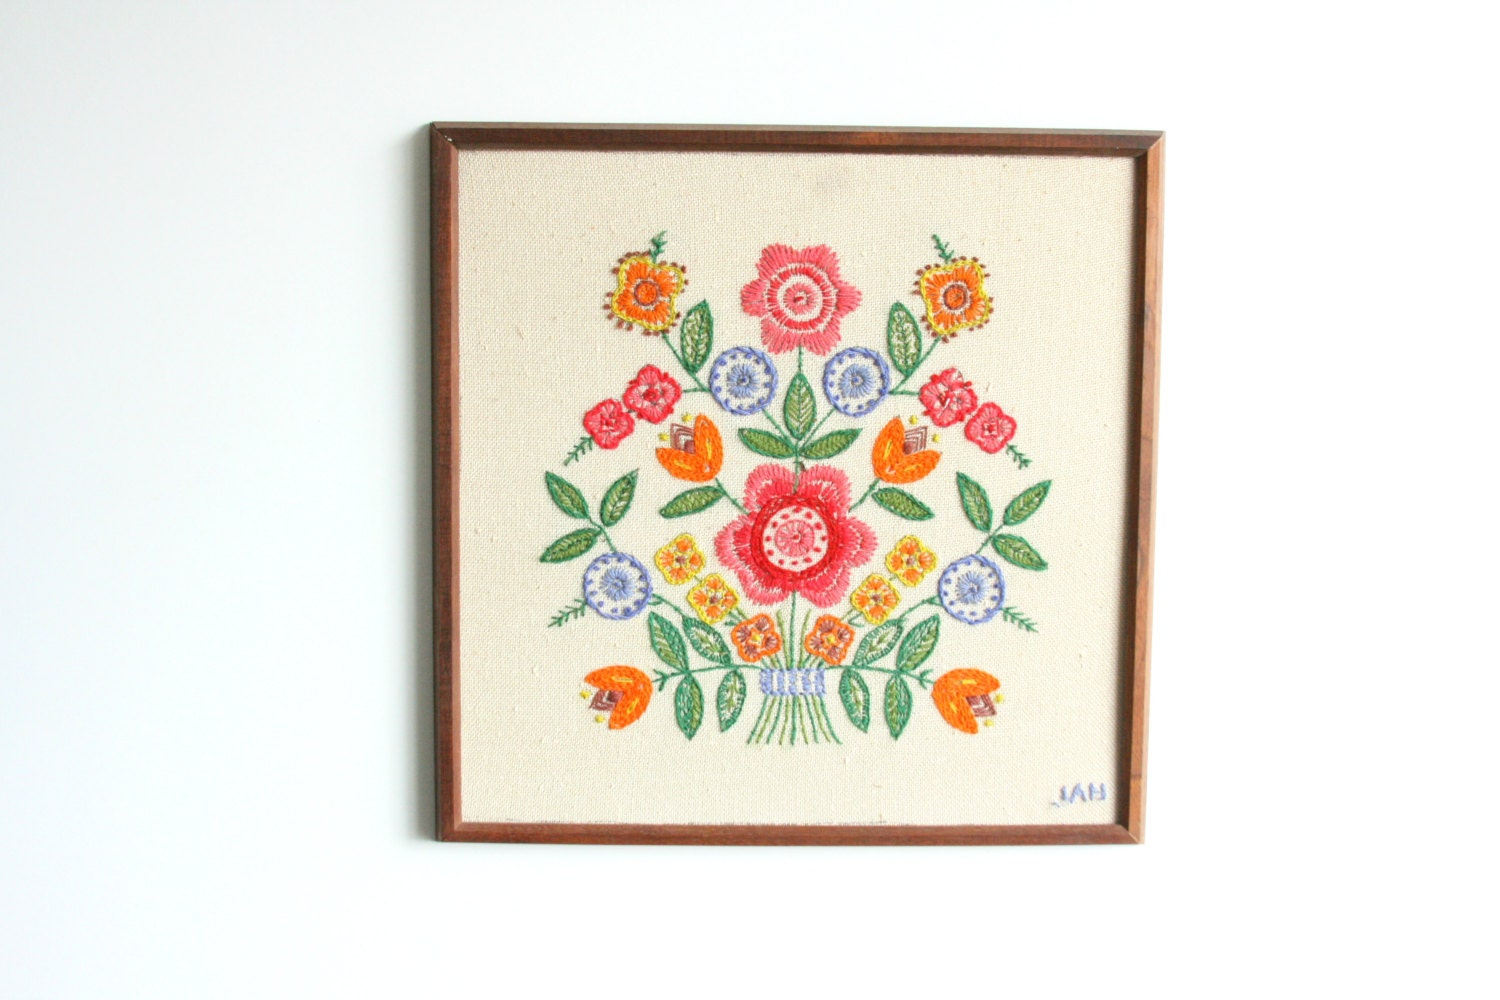 Vintage crewel hand embroidery floral picture framed wall